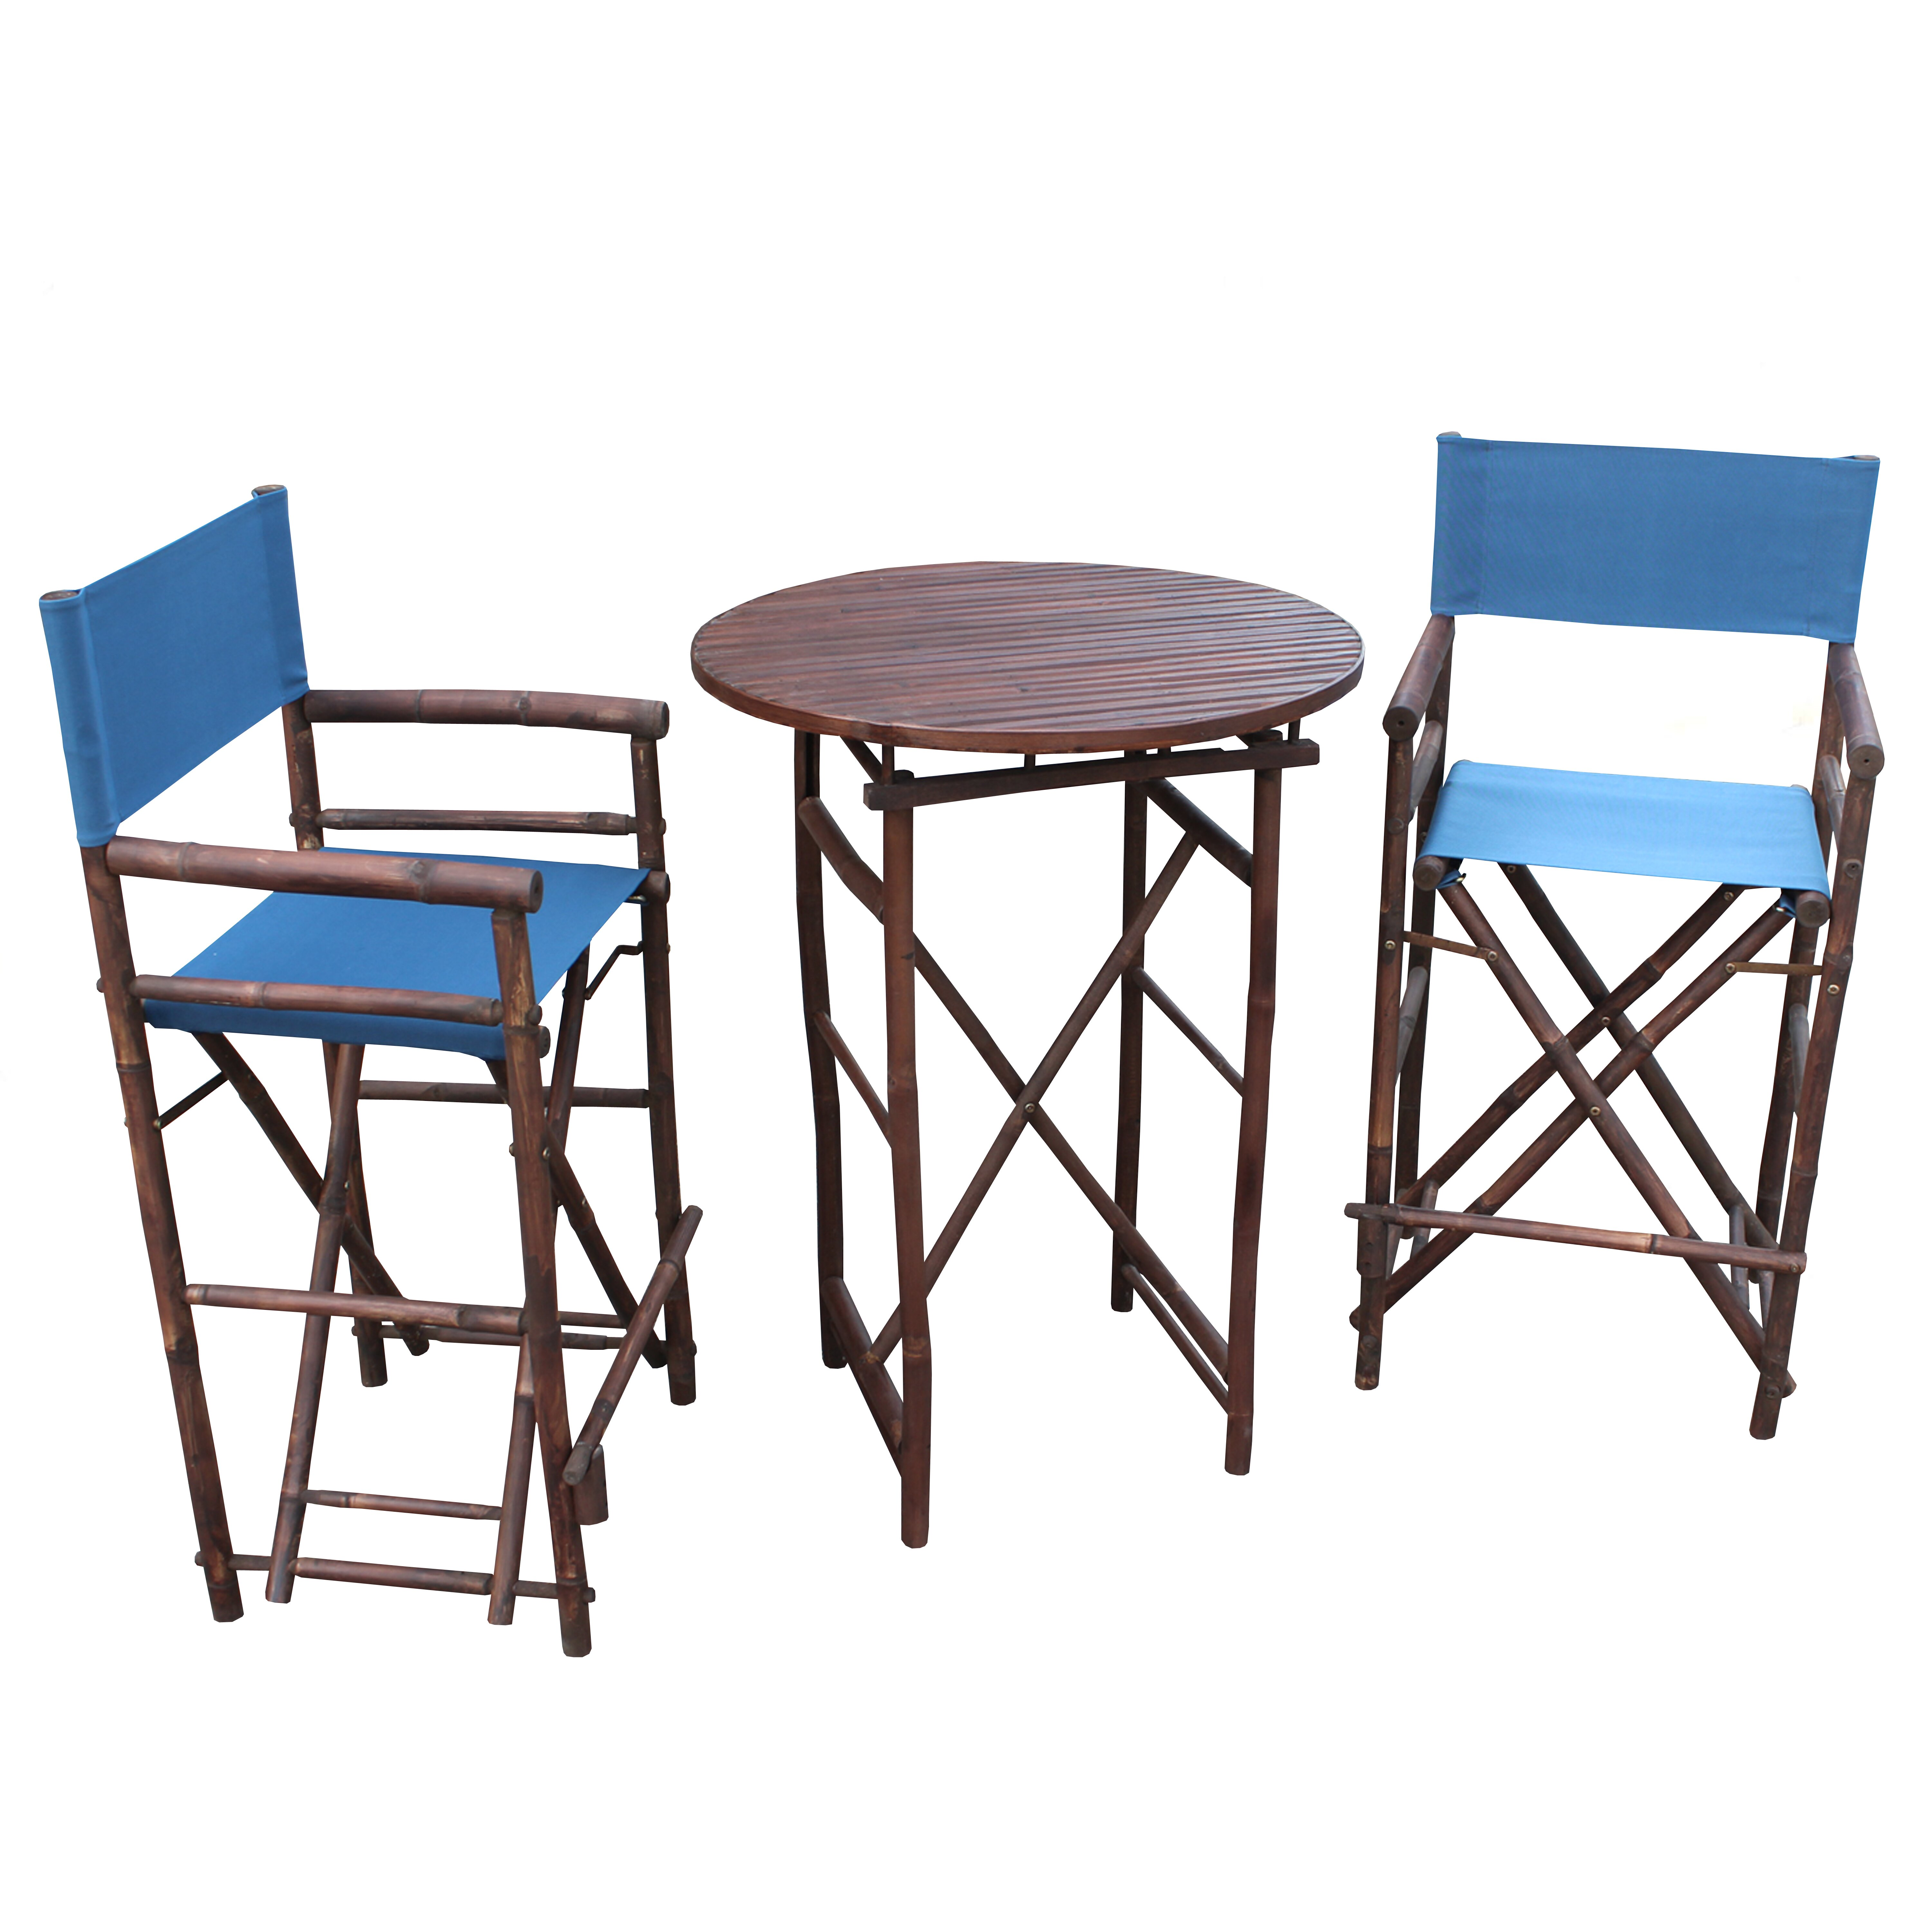 Zew 3 piece dining set for Signoraware organise your kitchen set 8 pieces